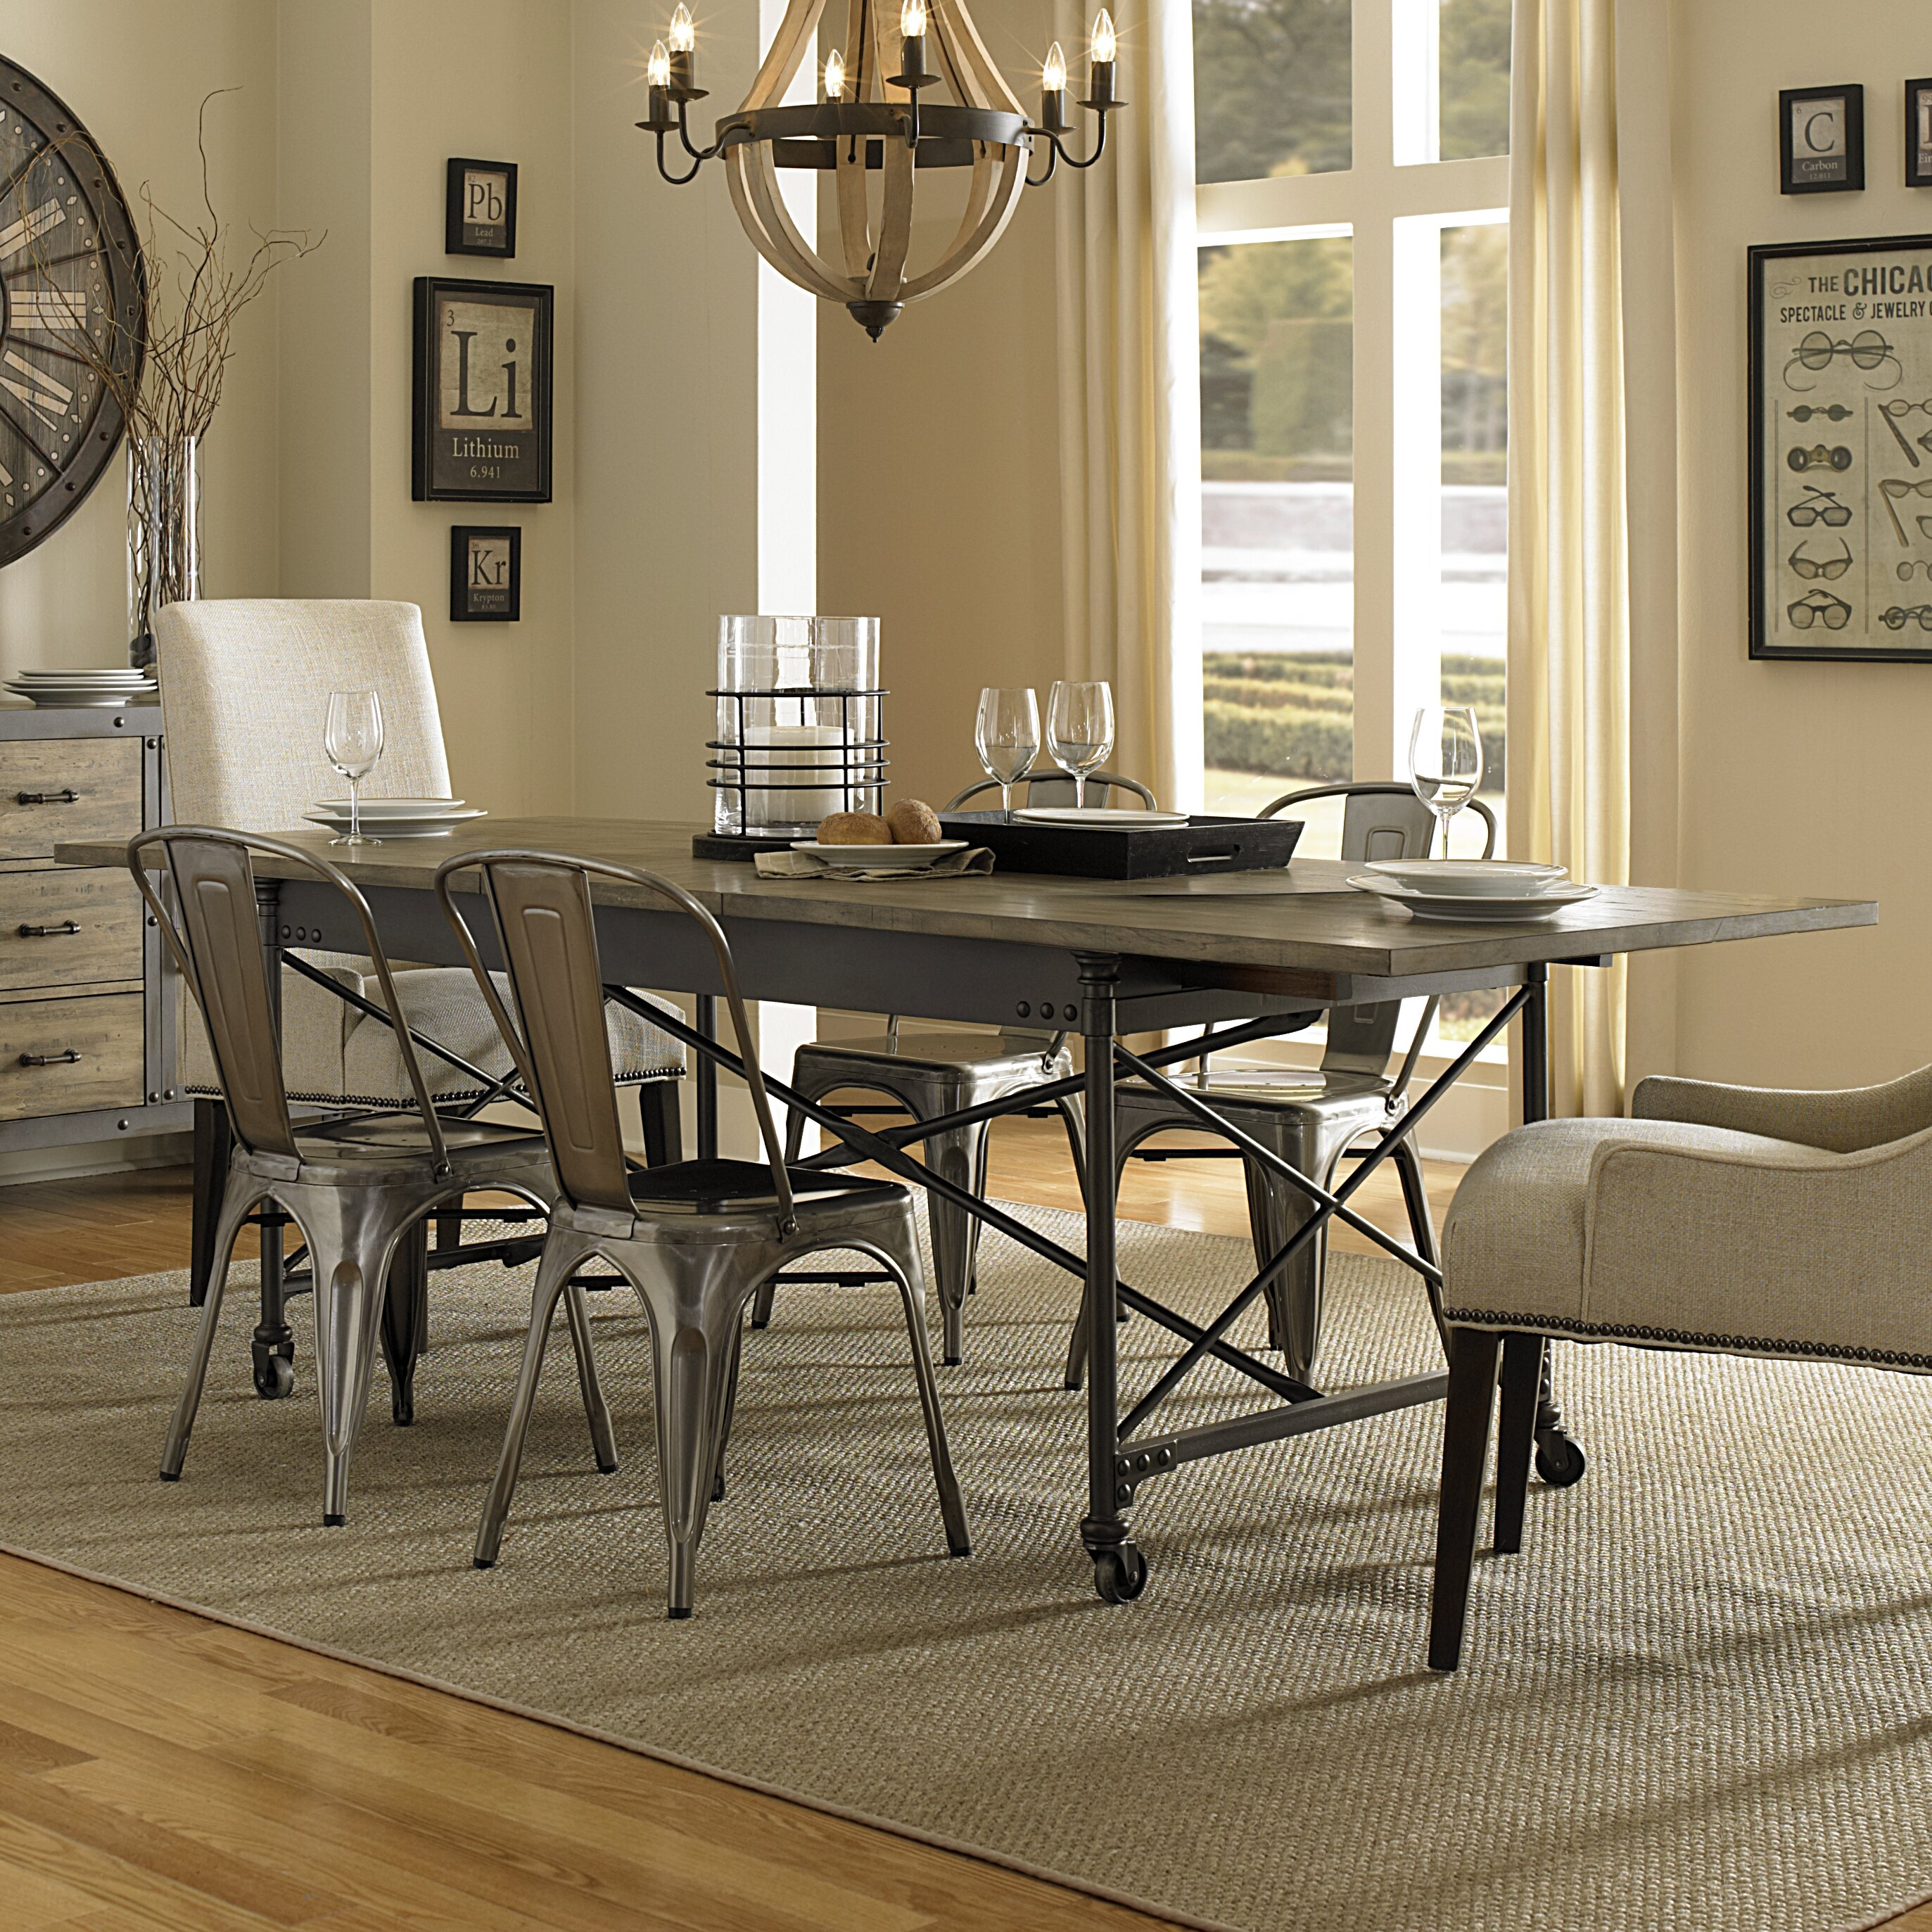 Magnussen walton dining table reviews wayfair